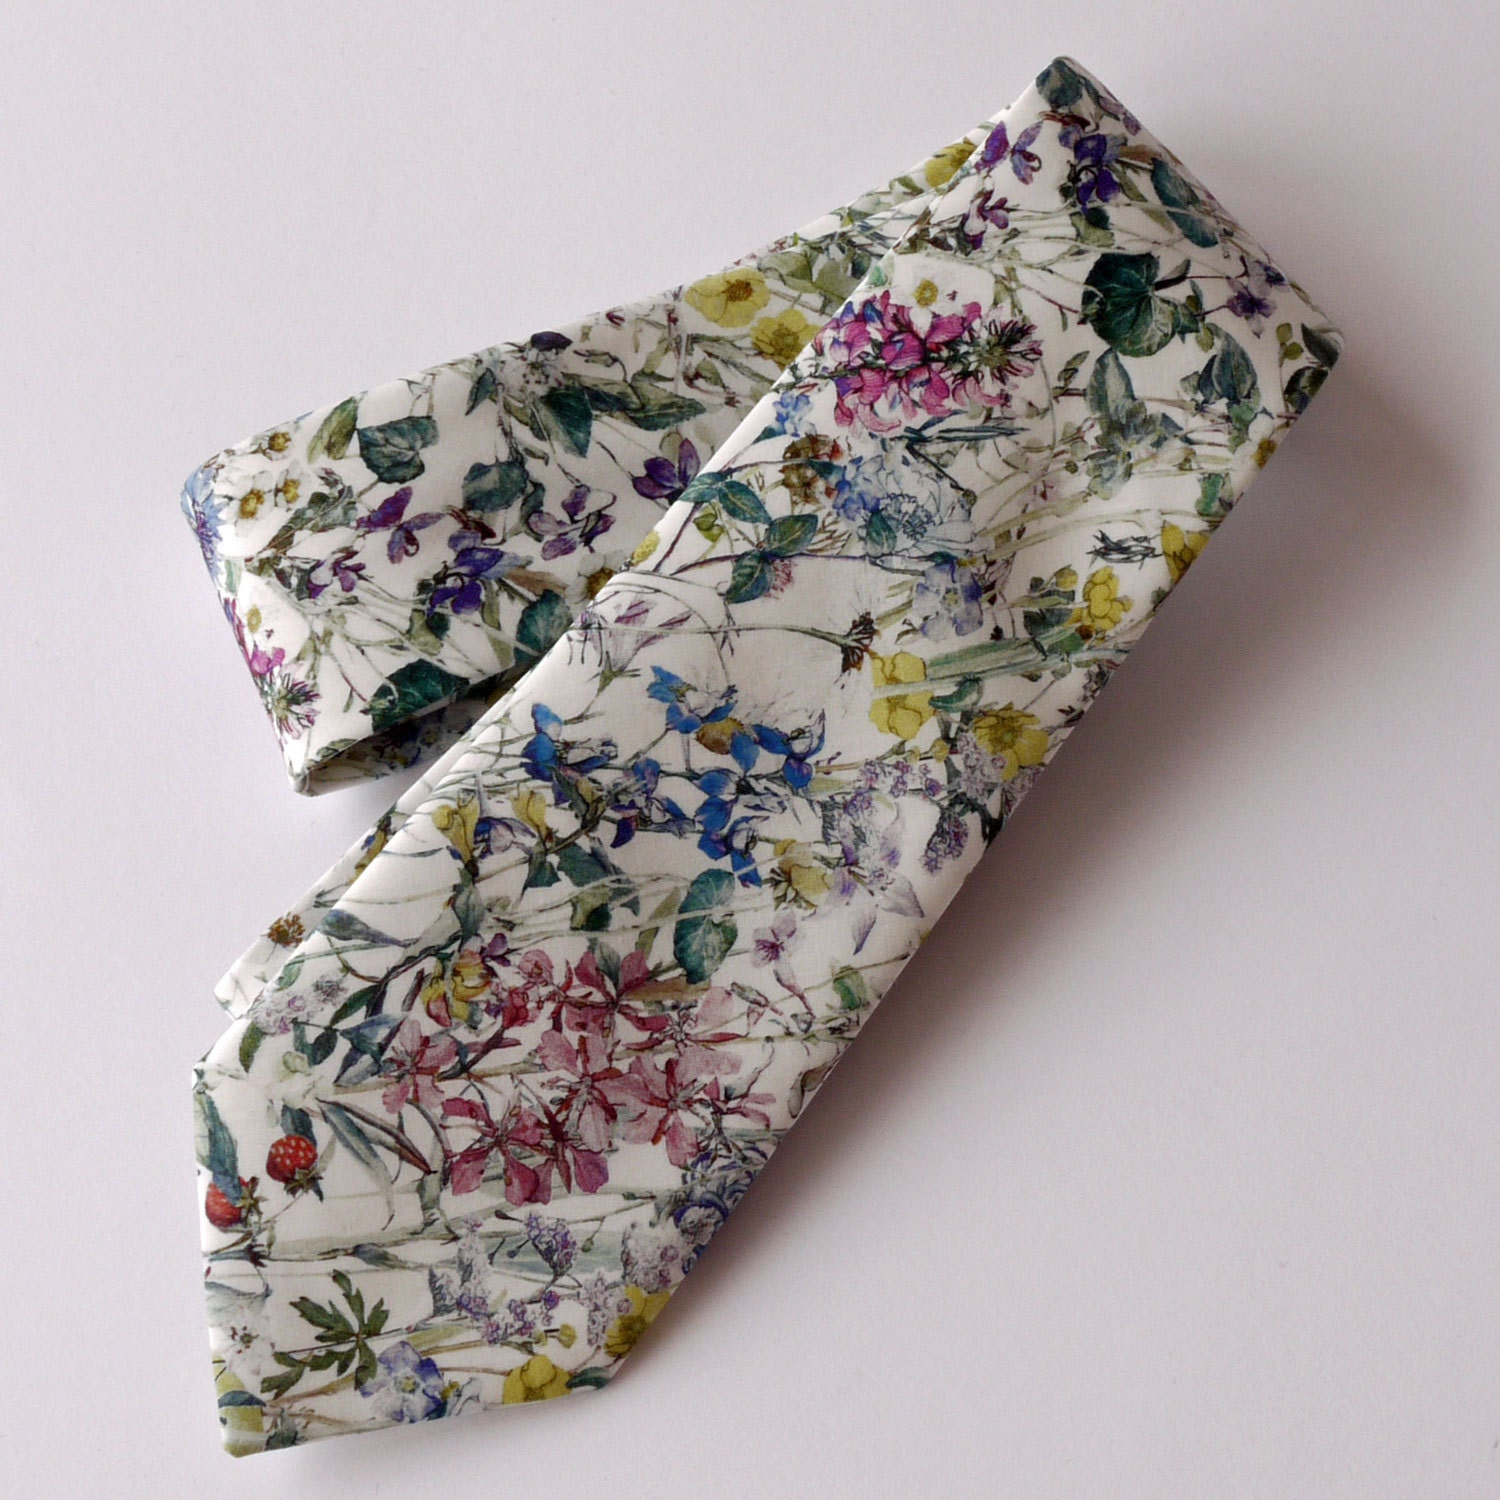 Floral Liberty print tie  wedding tie    Liberty tie Wild Flowers tana lawn  floral tie